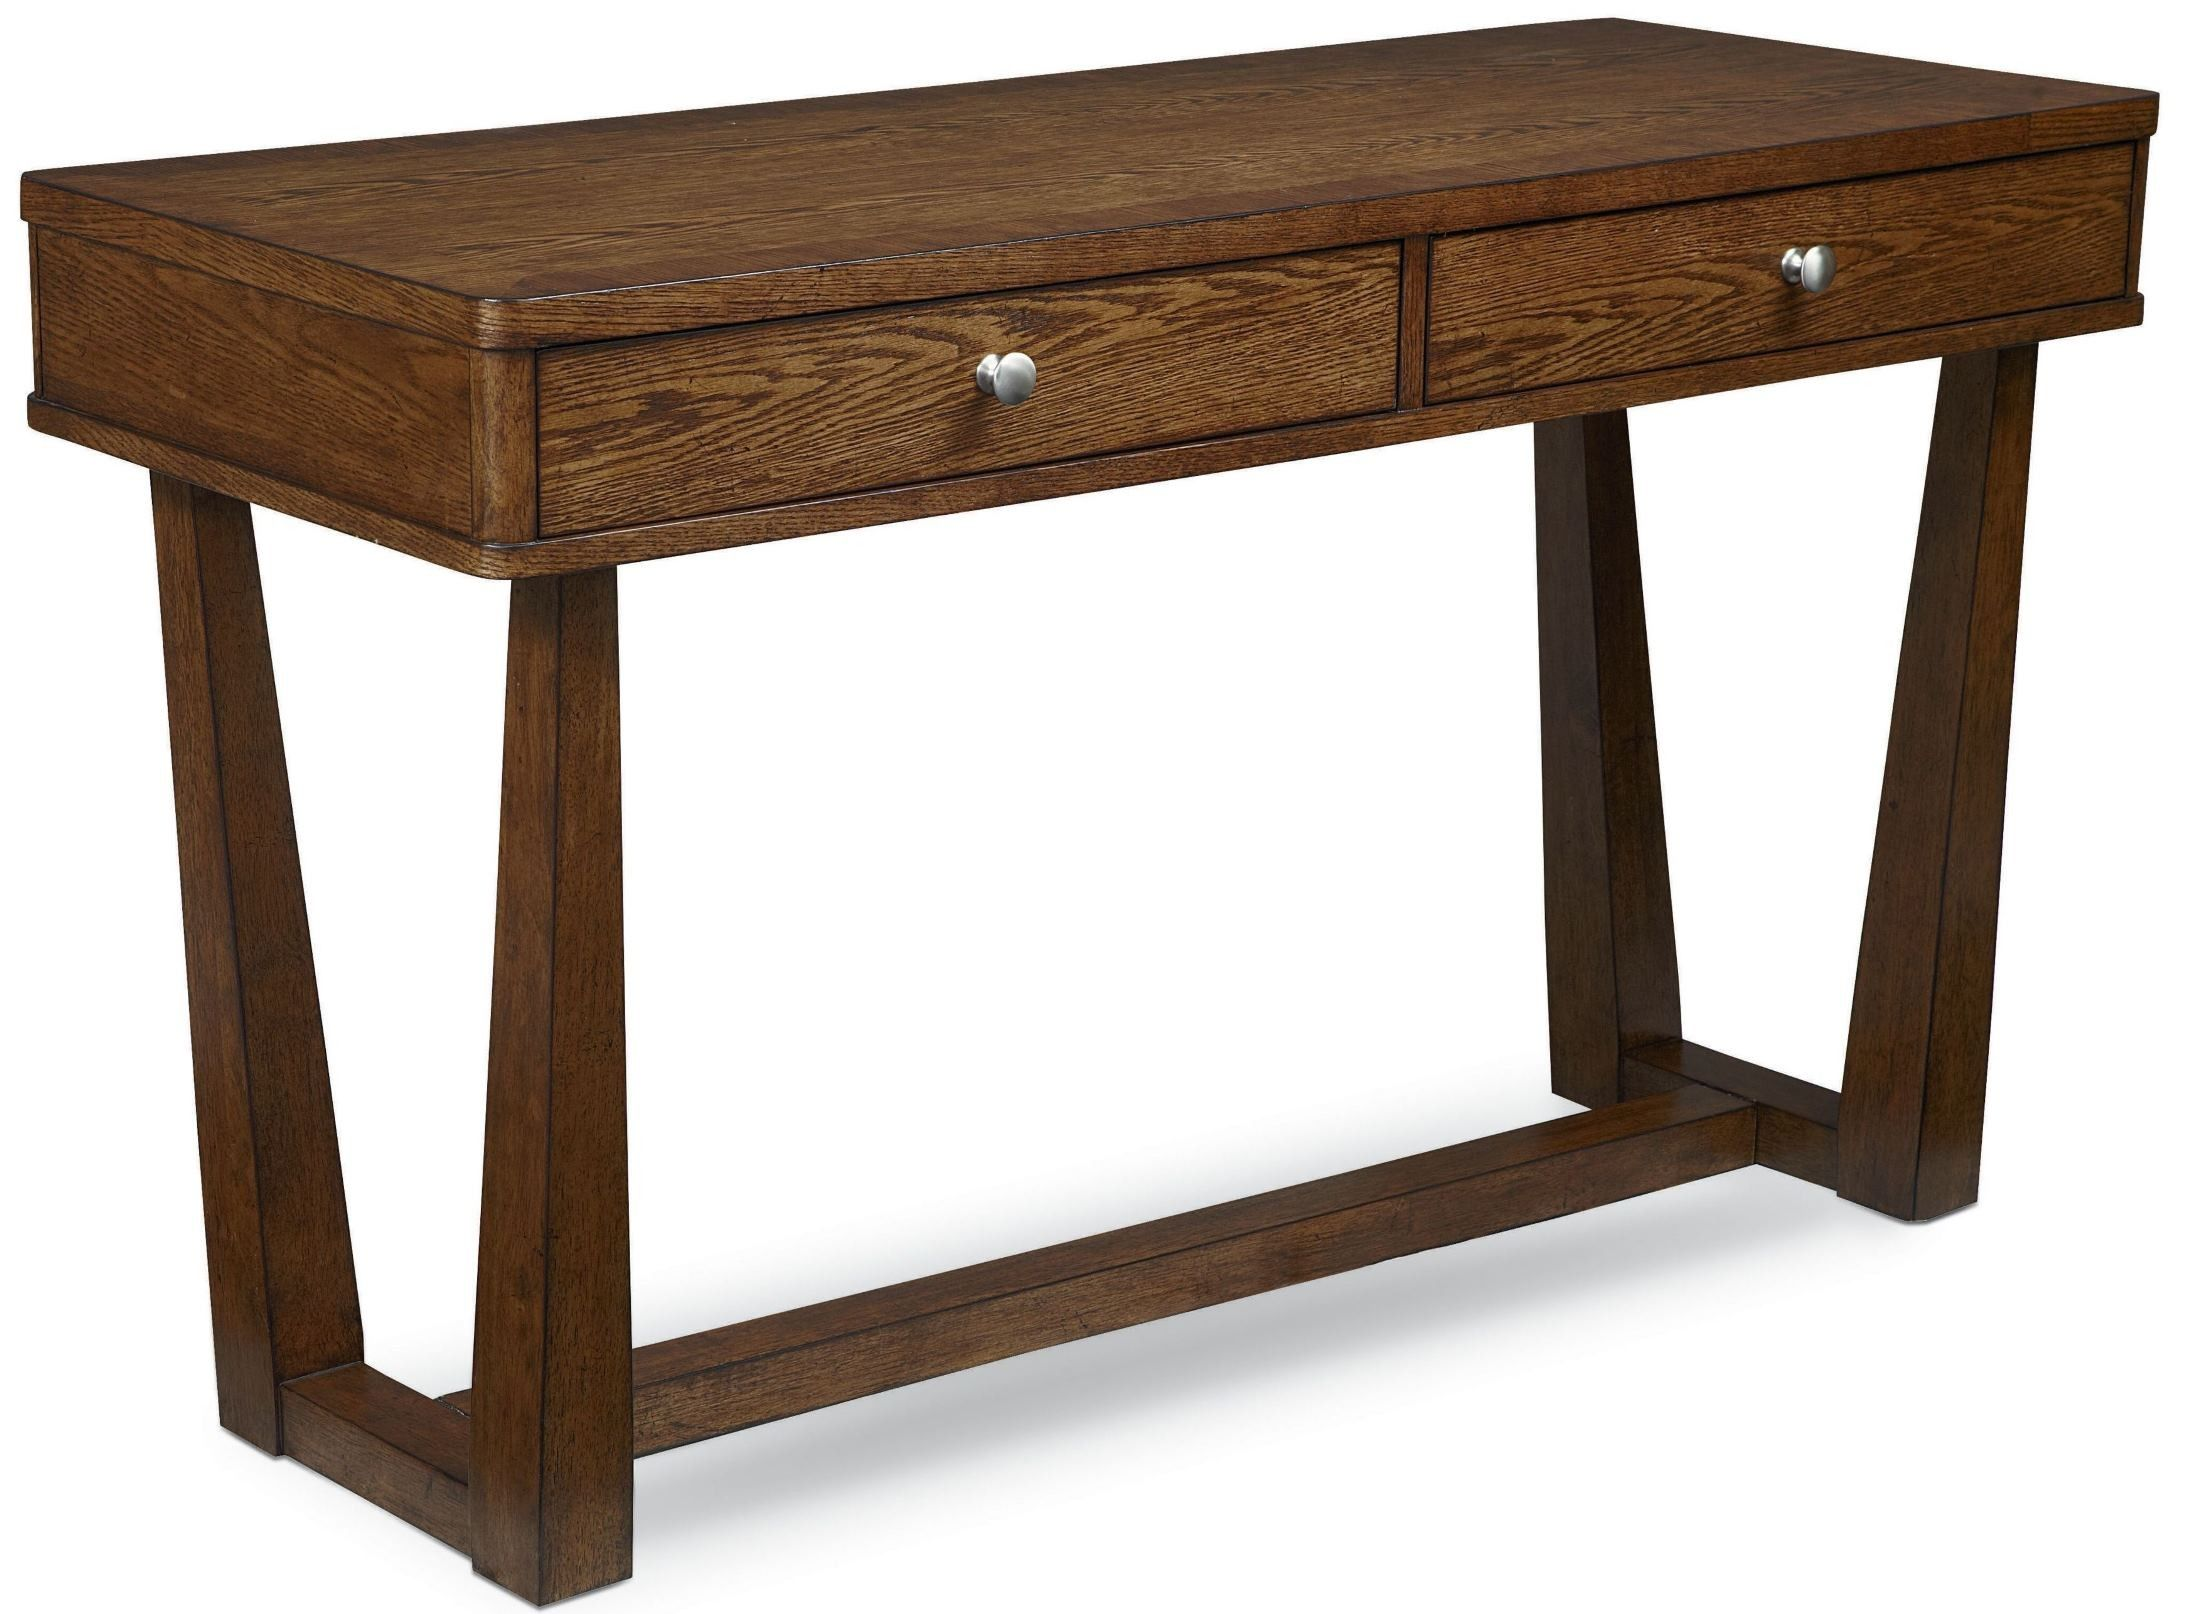 Frasier Sofa Table By Lane Broyhill Furniture Furniture Console Table